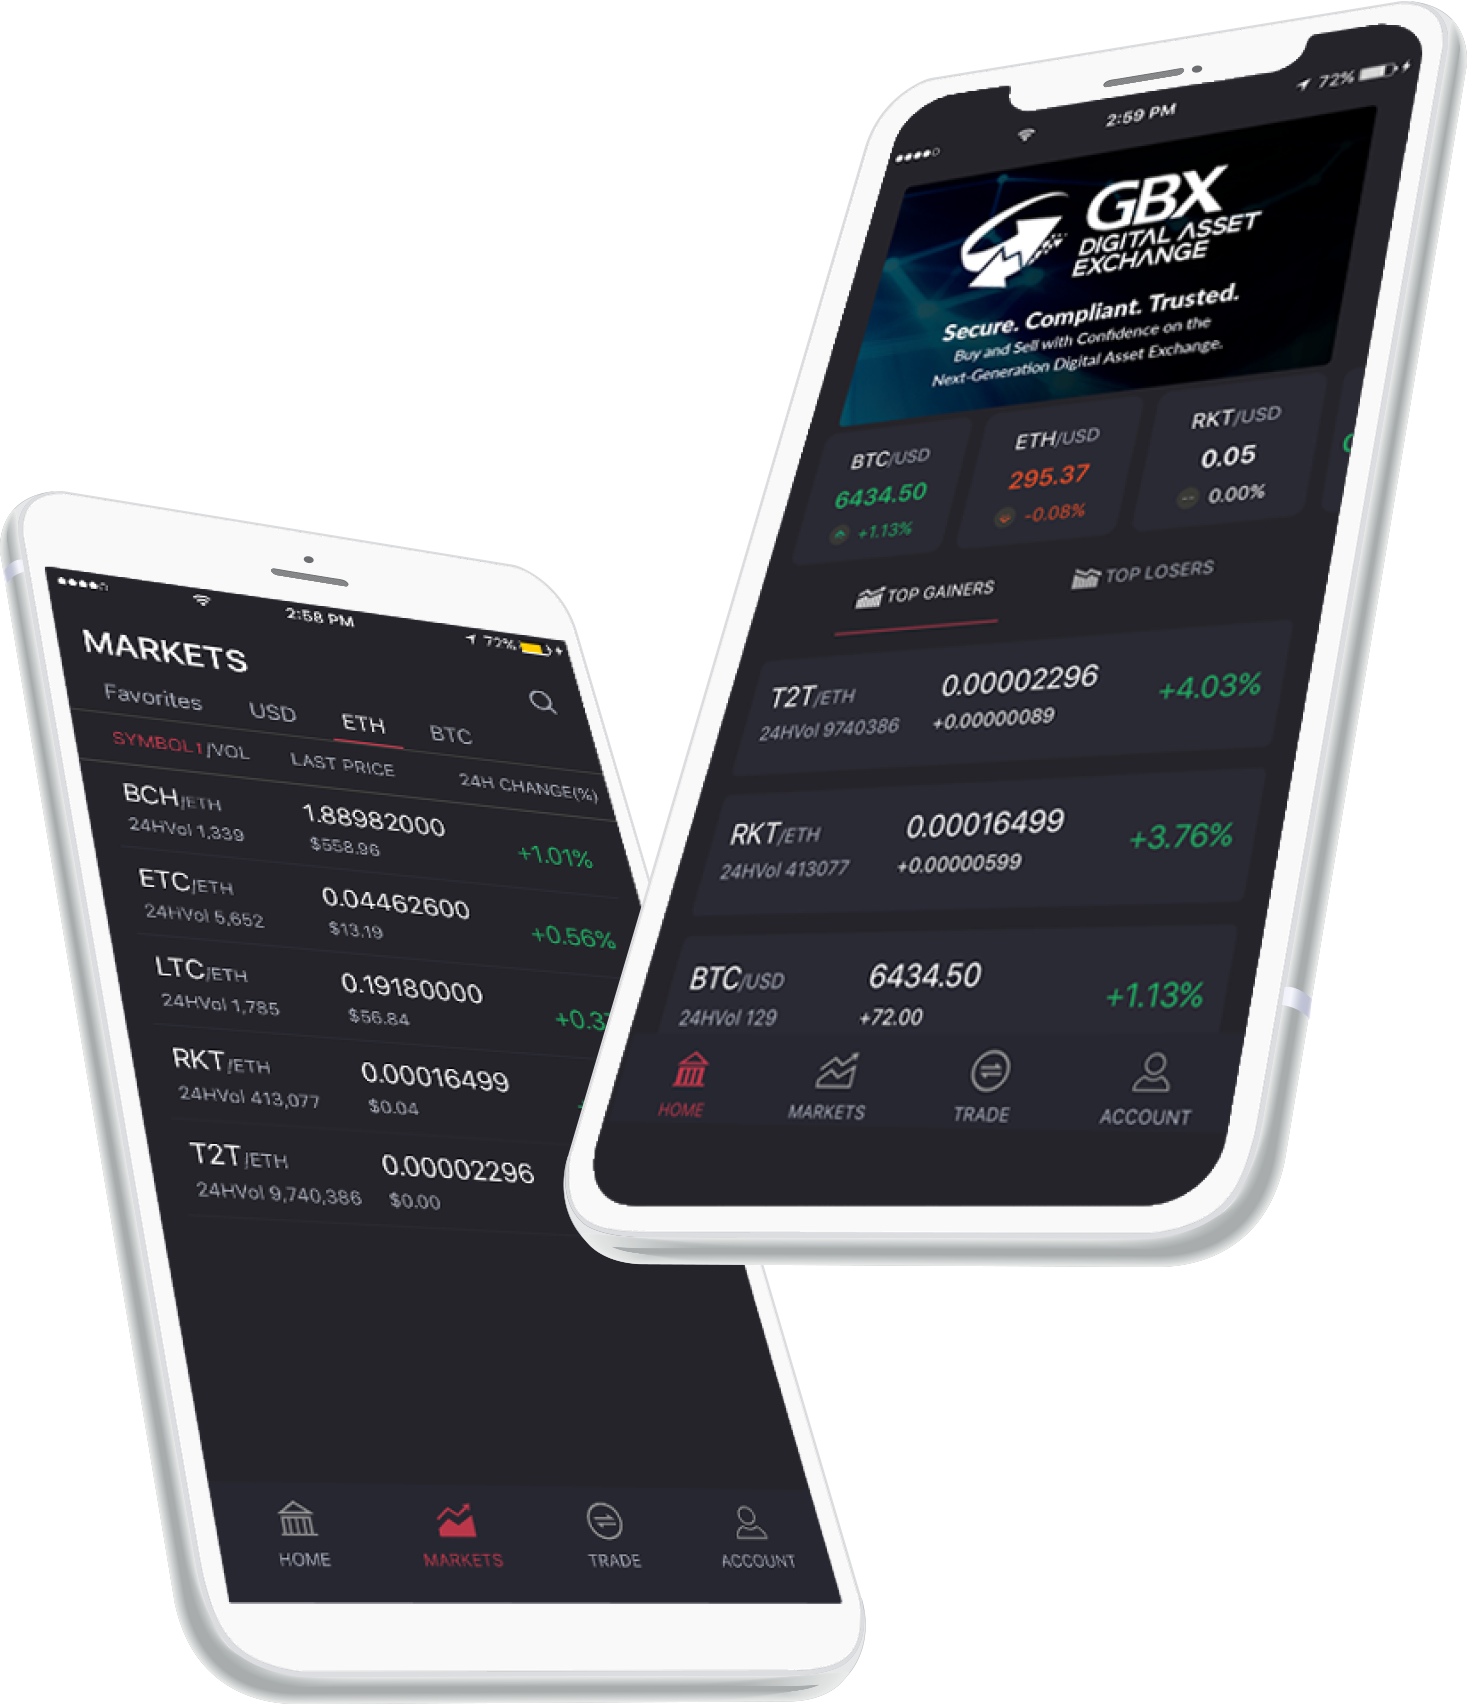 Gibraltar Digital Assets Exchange (GBX-GDX)